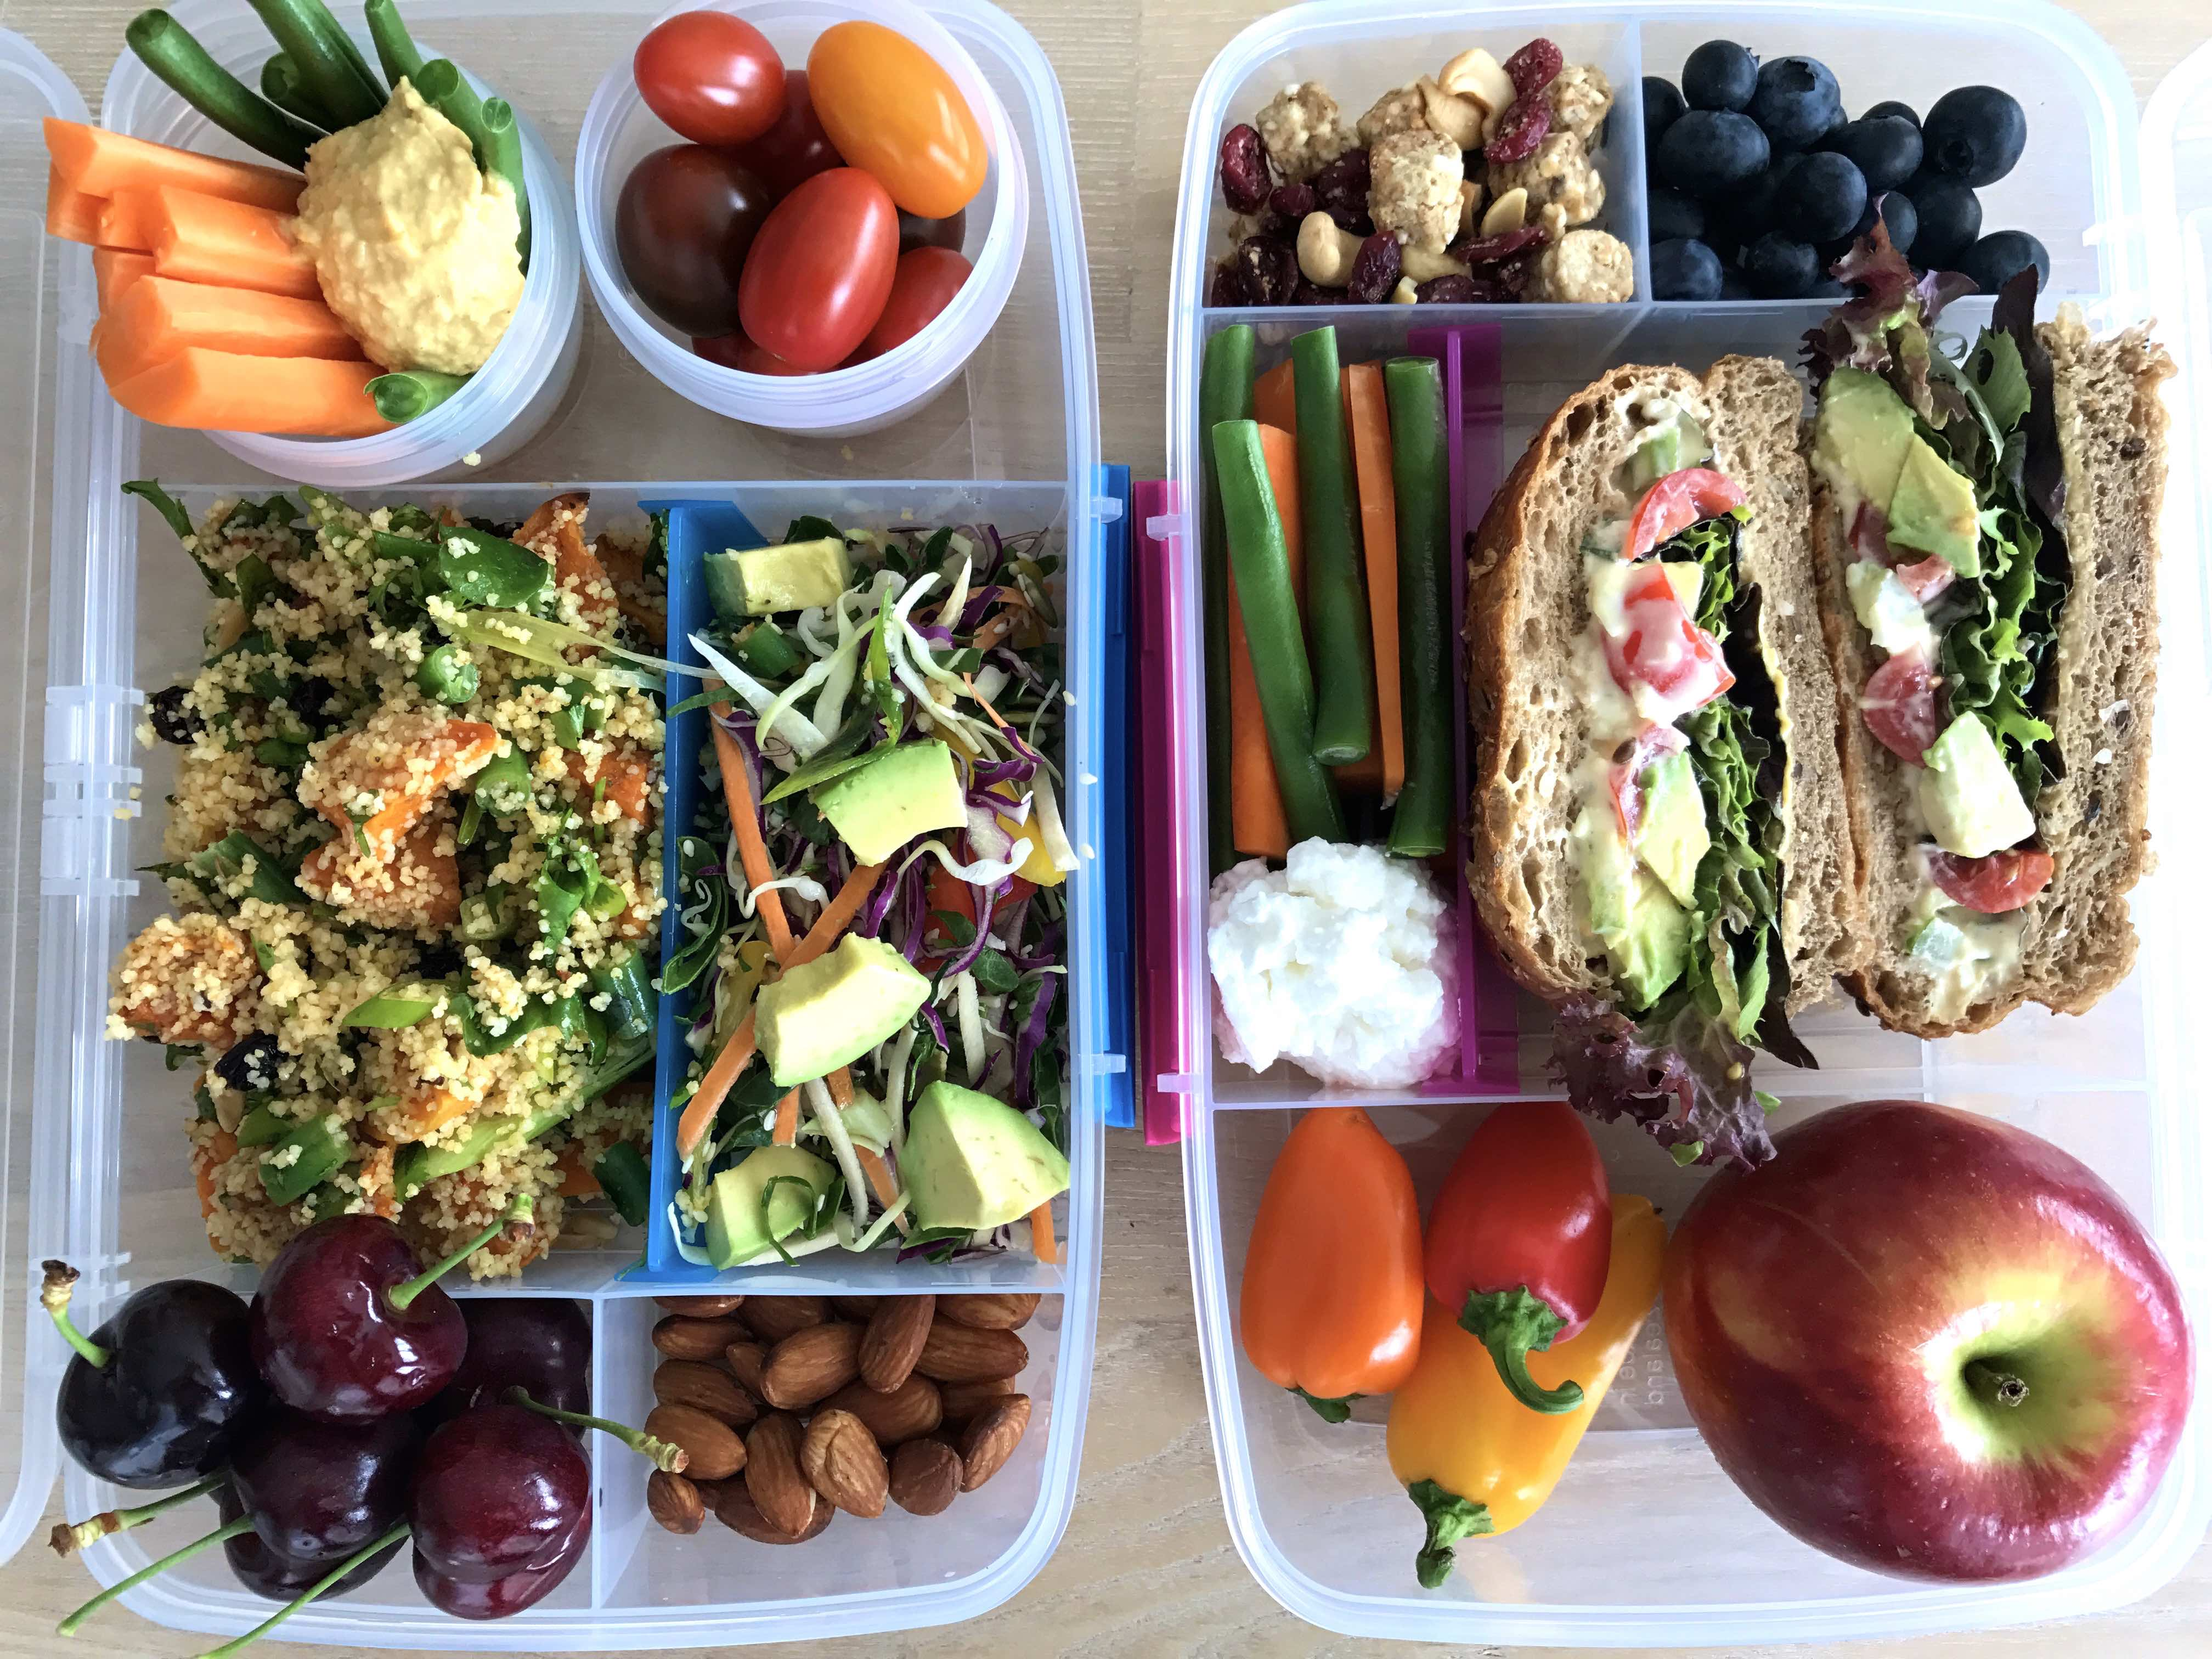 Examples of healthy lunch boxes.